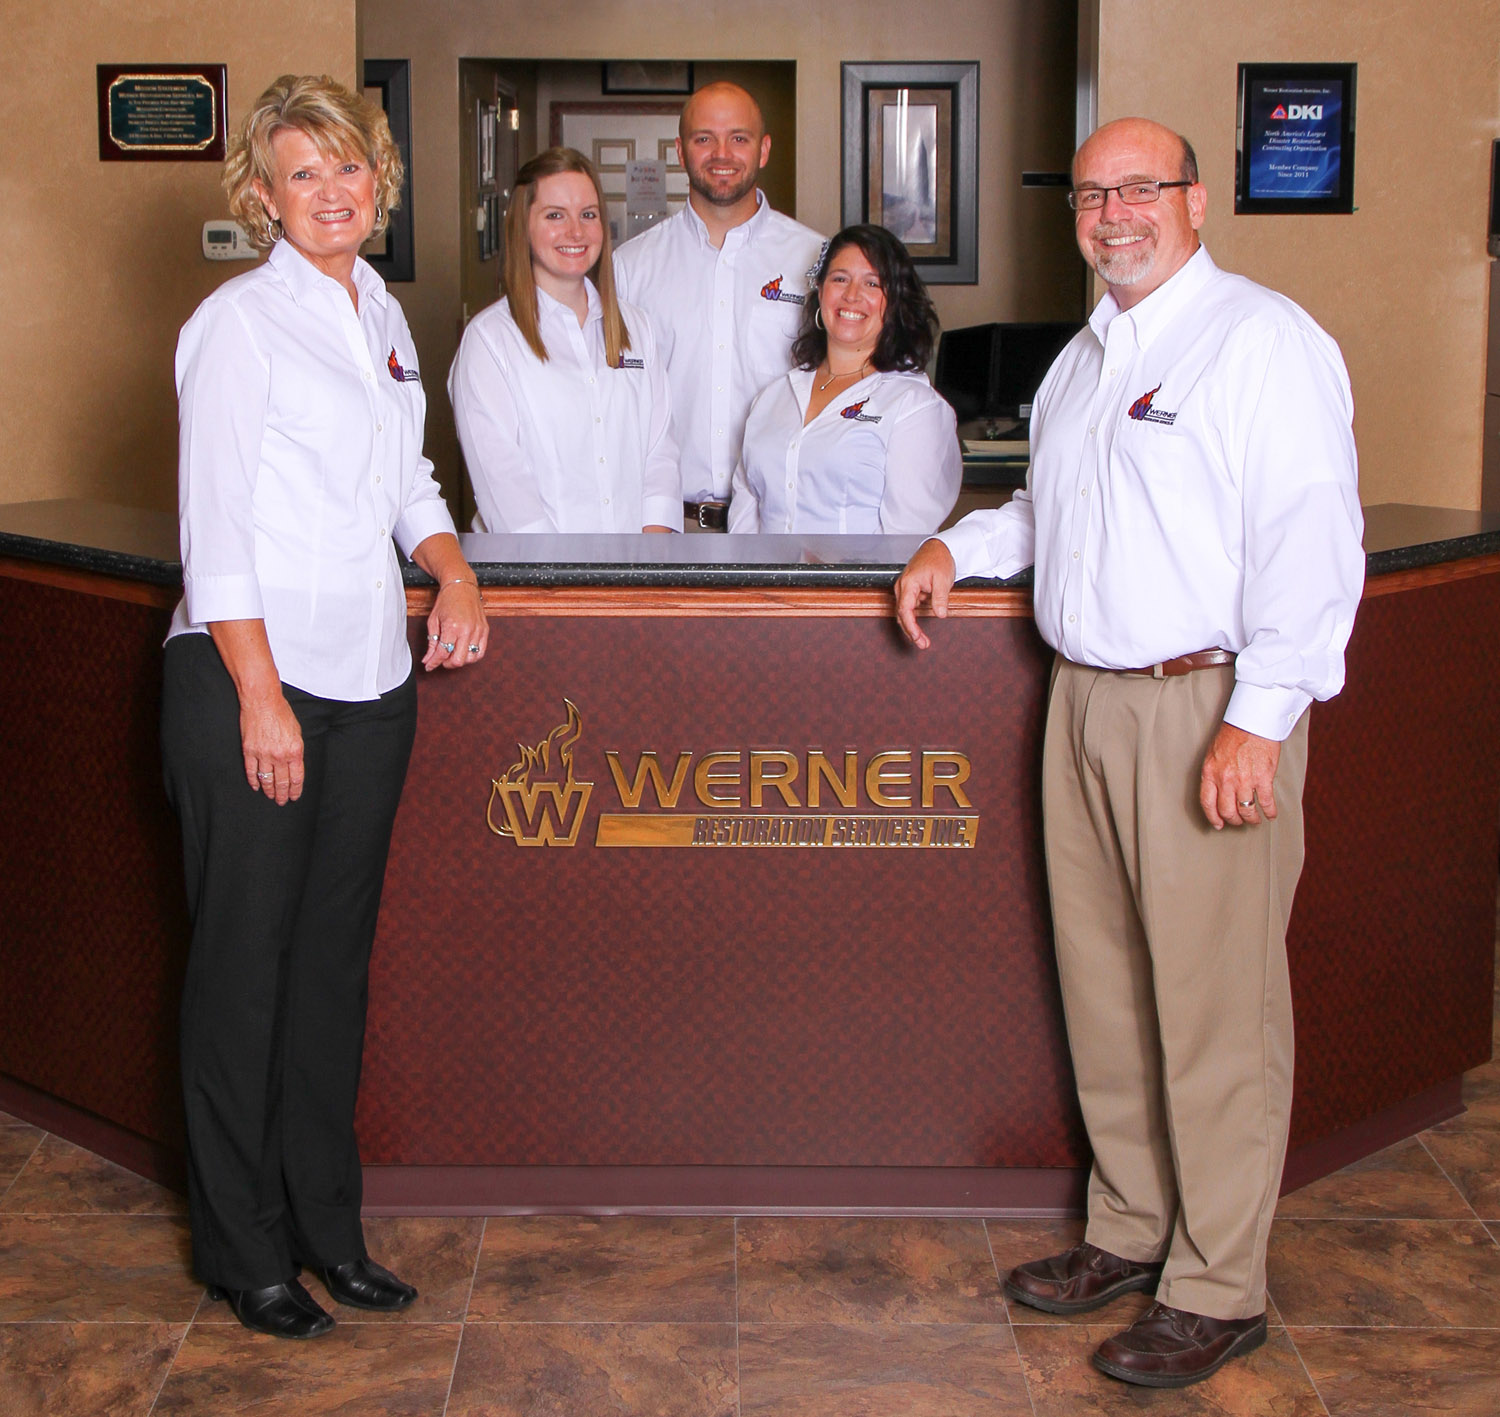 Werner Restoration Services | Werner Family Photo